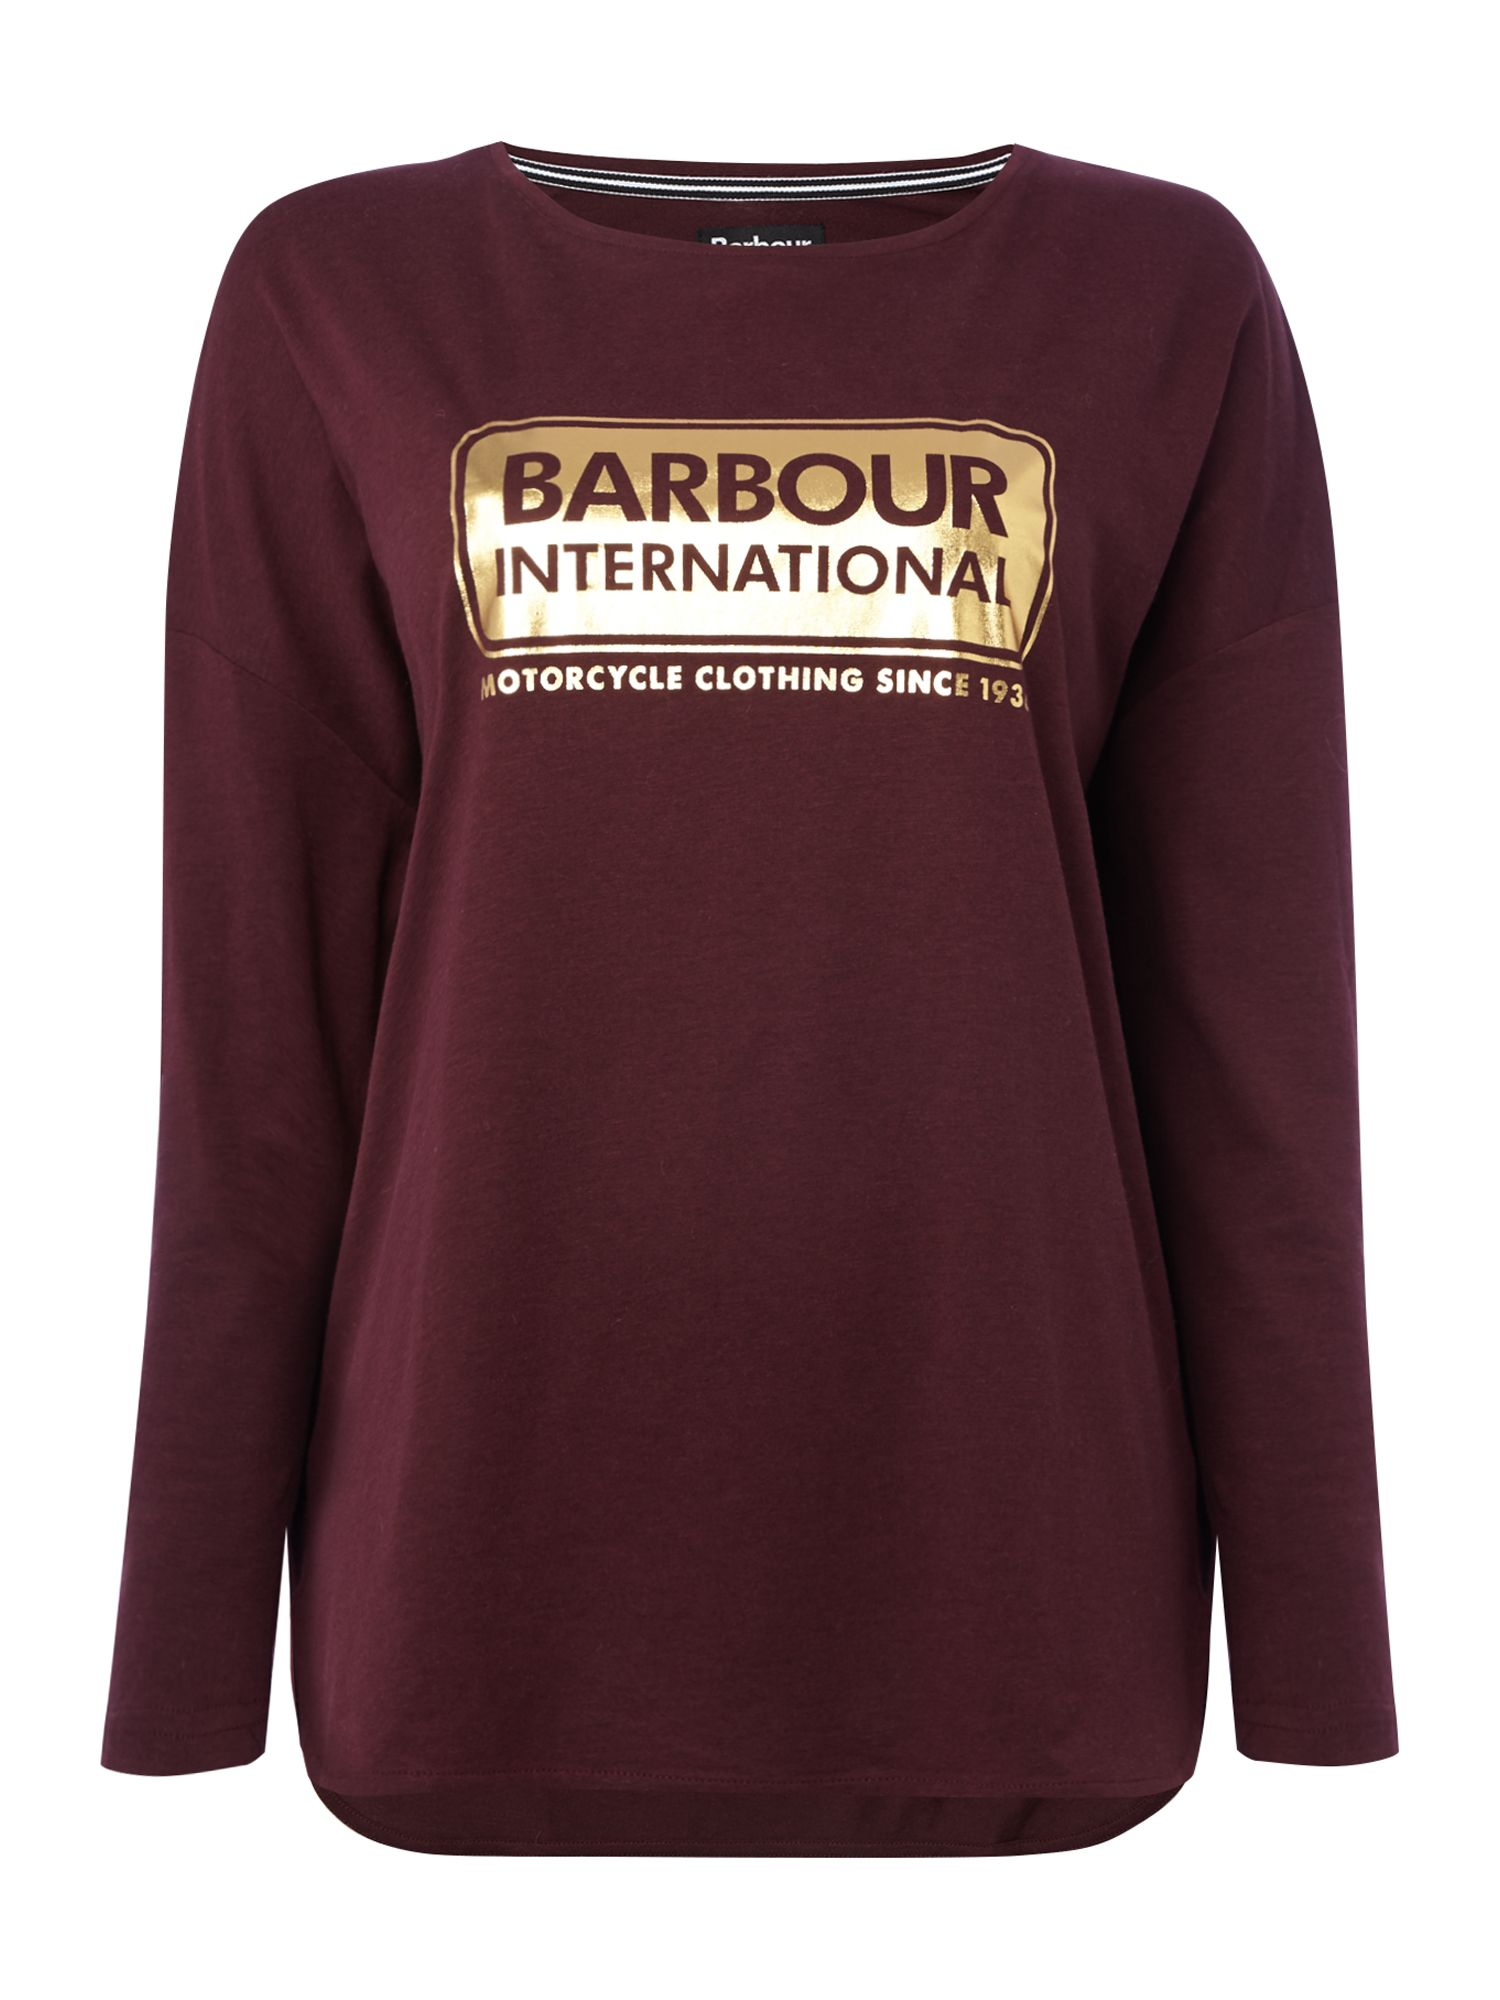 Barbour Exclusive Mallory Long Sleeve Tee, Wine